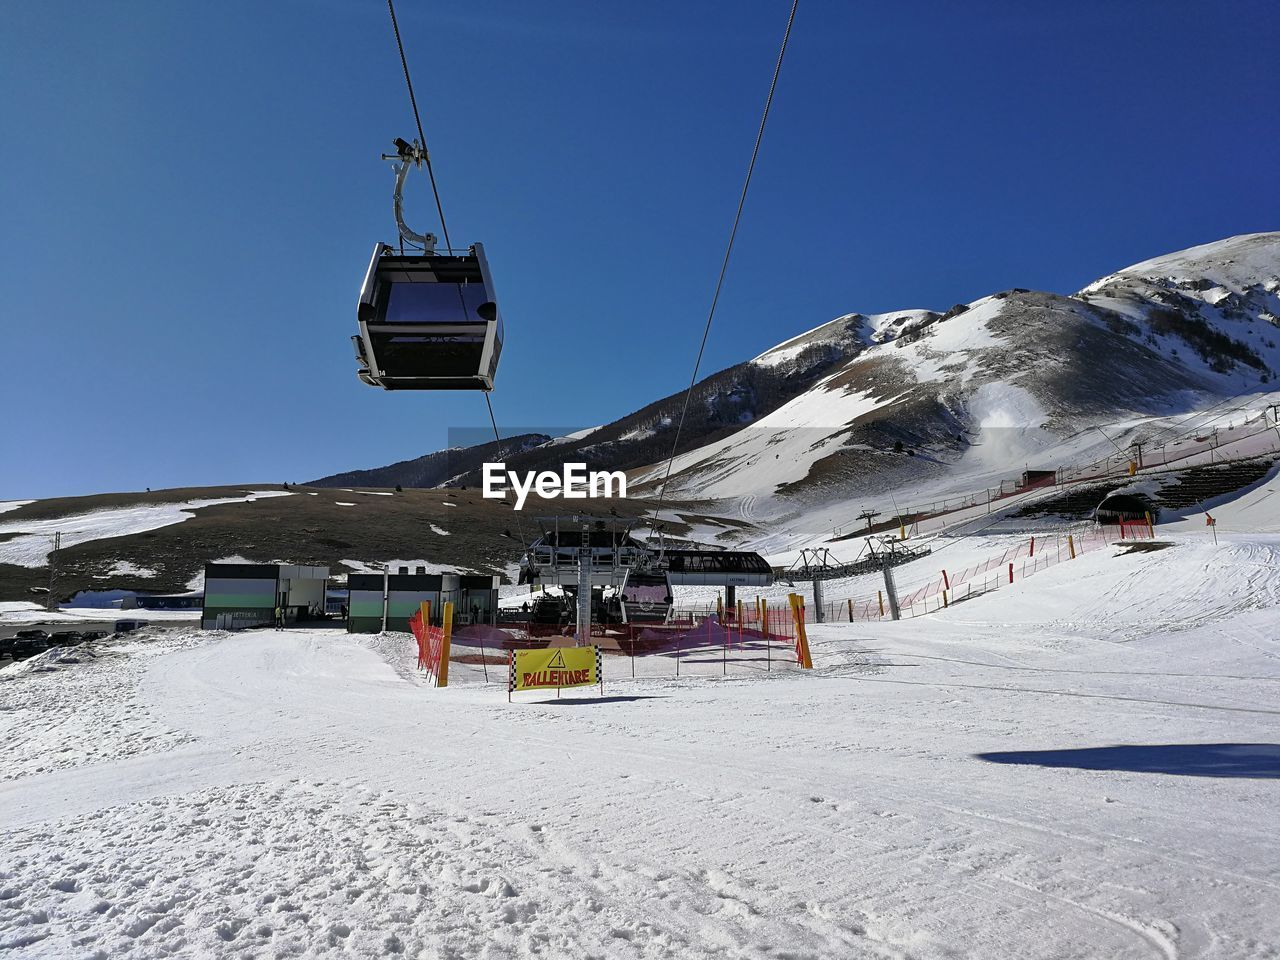 snow, cold temperature, winter, mountain, sky, snowcapped mountain, cable car, ski lift, scenics - nature, transportation, clear sky, nature, beauty in nature, day, environment, mountain range, overhead cable car, incidental people, mode of transportation, outdoors, ski resort